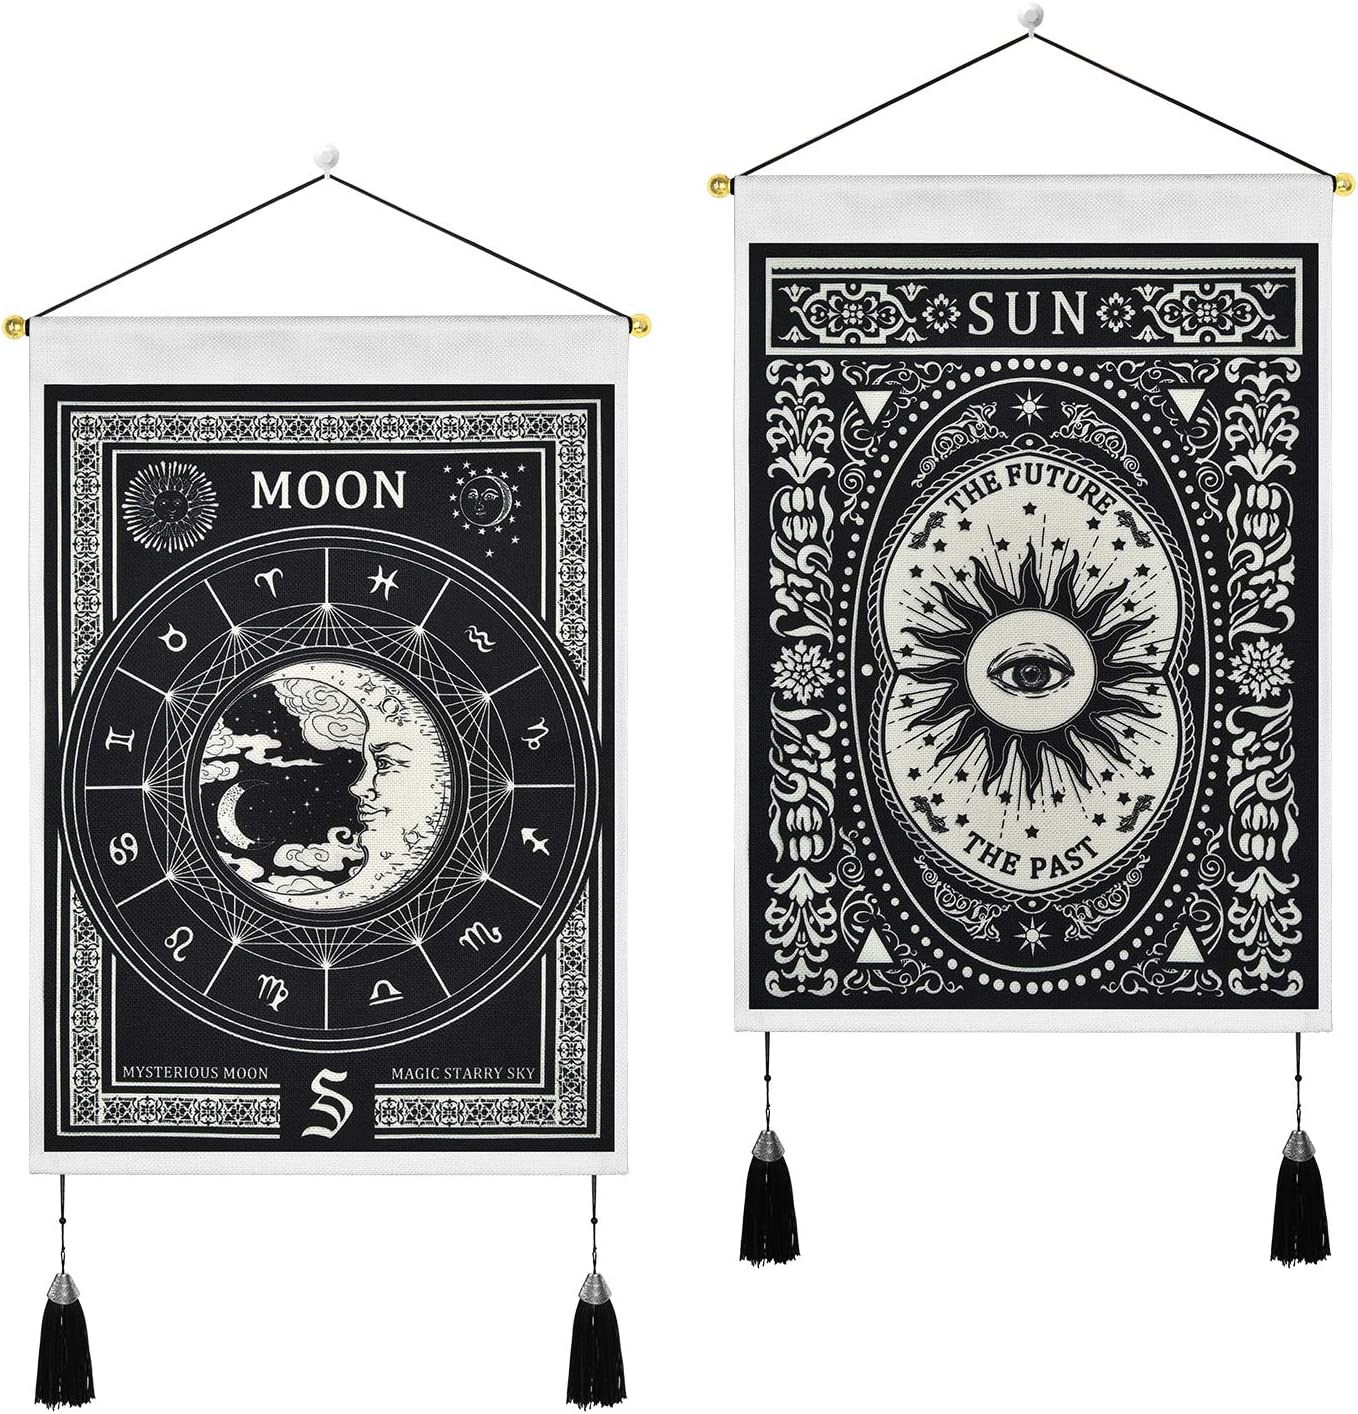 Pack of 2 Tarot Tapestry Moon and Sun Tapestry Mysterious Tarot Cards Tapestries White and Black Tapestry Wall Hanging for Room (13.8 x 19.7 inches)